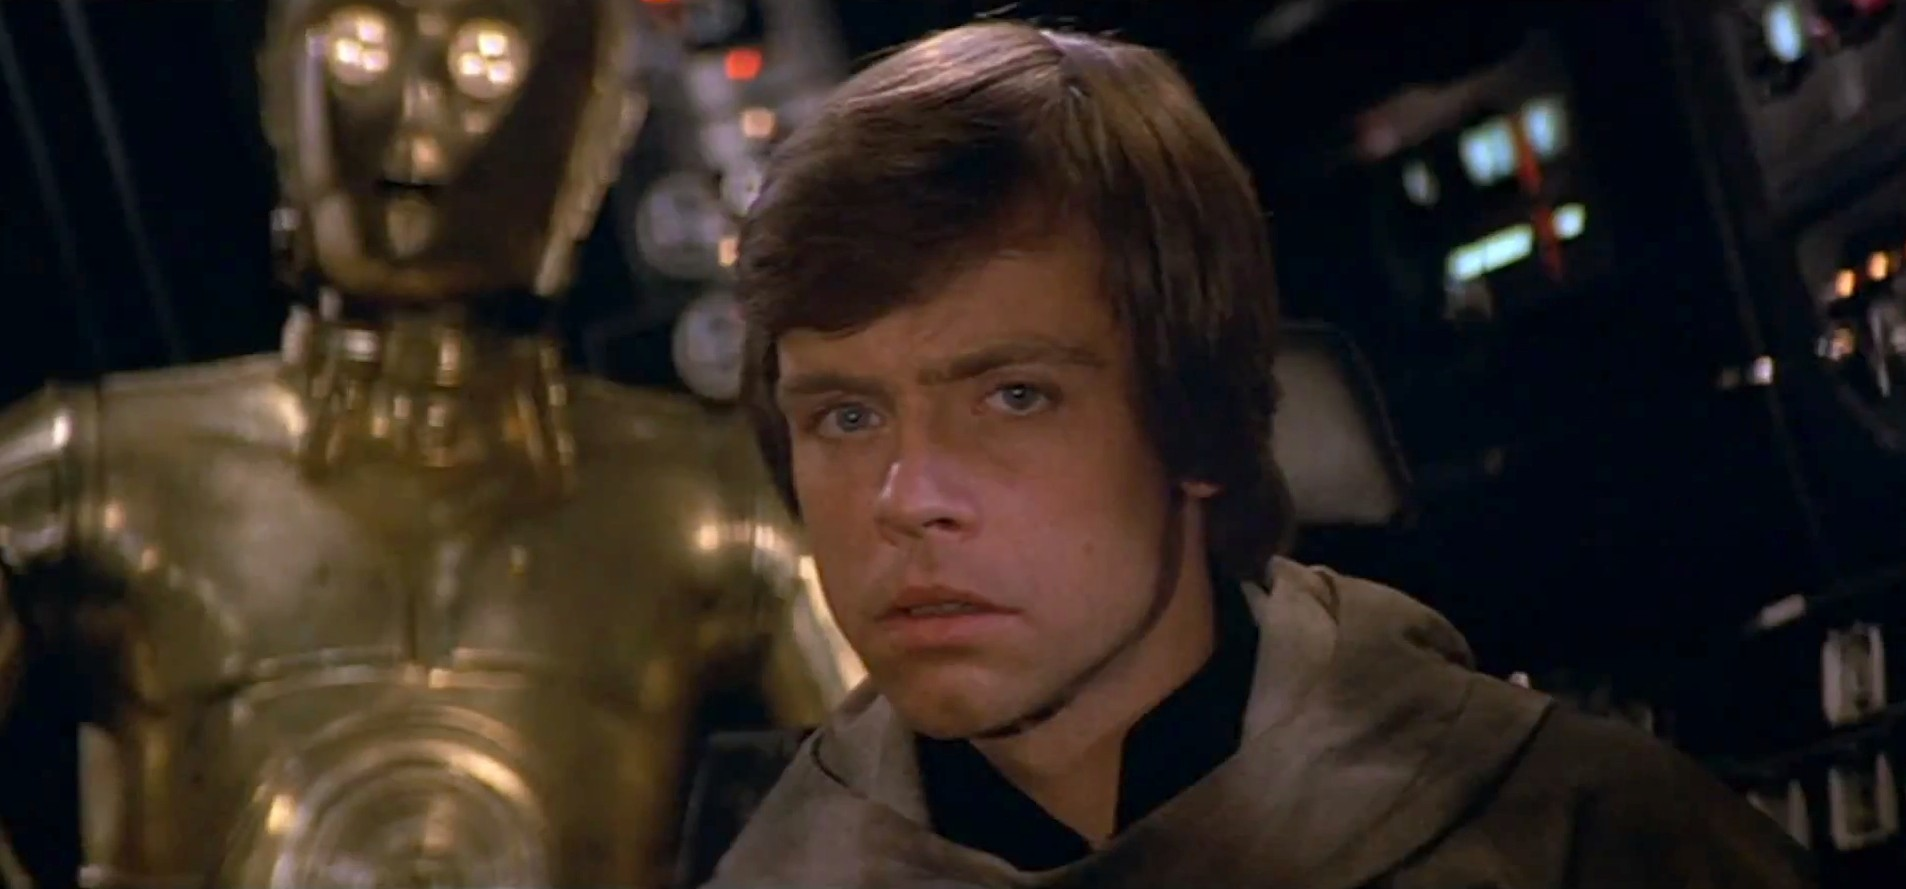 an analysis of luke in a new hope and the empire strikes back The empire strikes back  bring luke to his new master, the emperor k han finds luke and vice  to the empire strikes back is a perfectly symmetrical film.